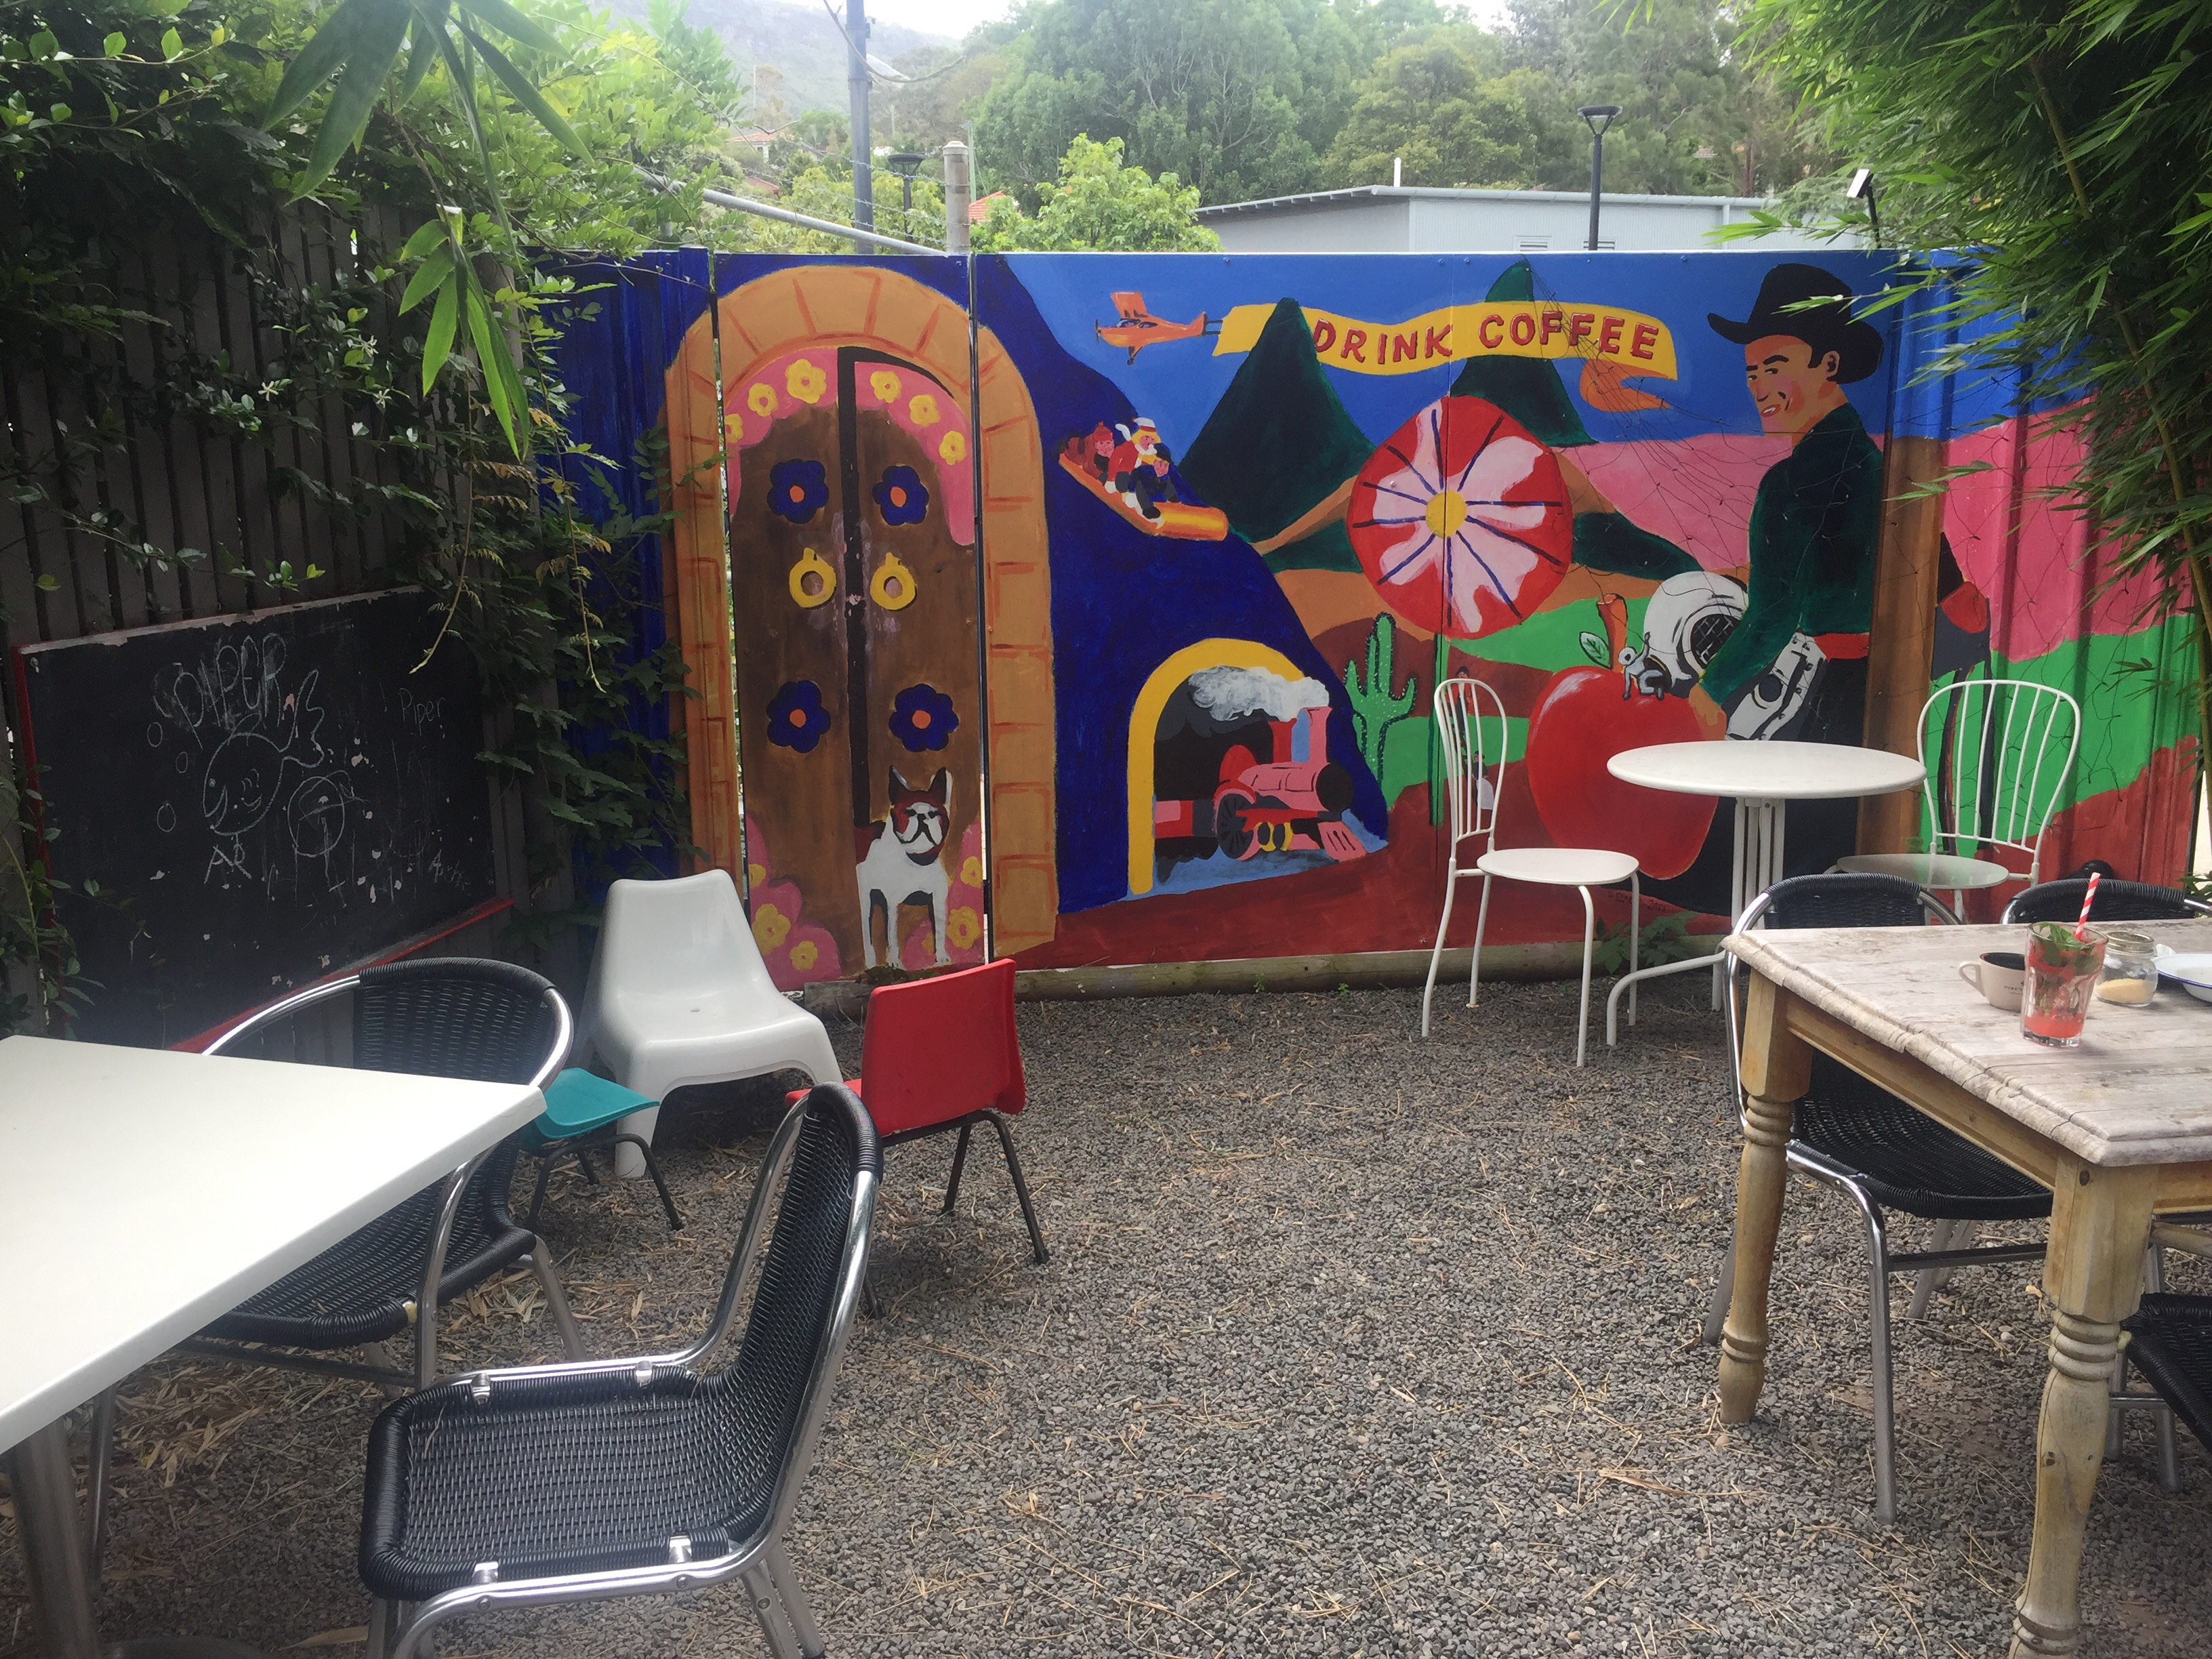 Outdoor_entertainment_area_for_kids_at_two_mountains_merchants